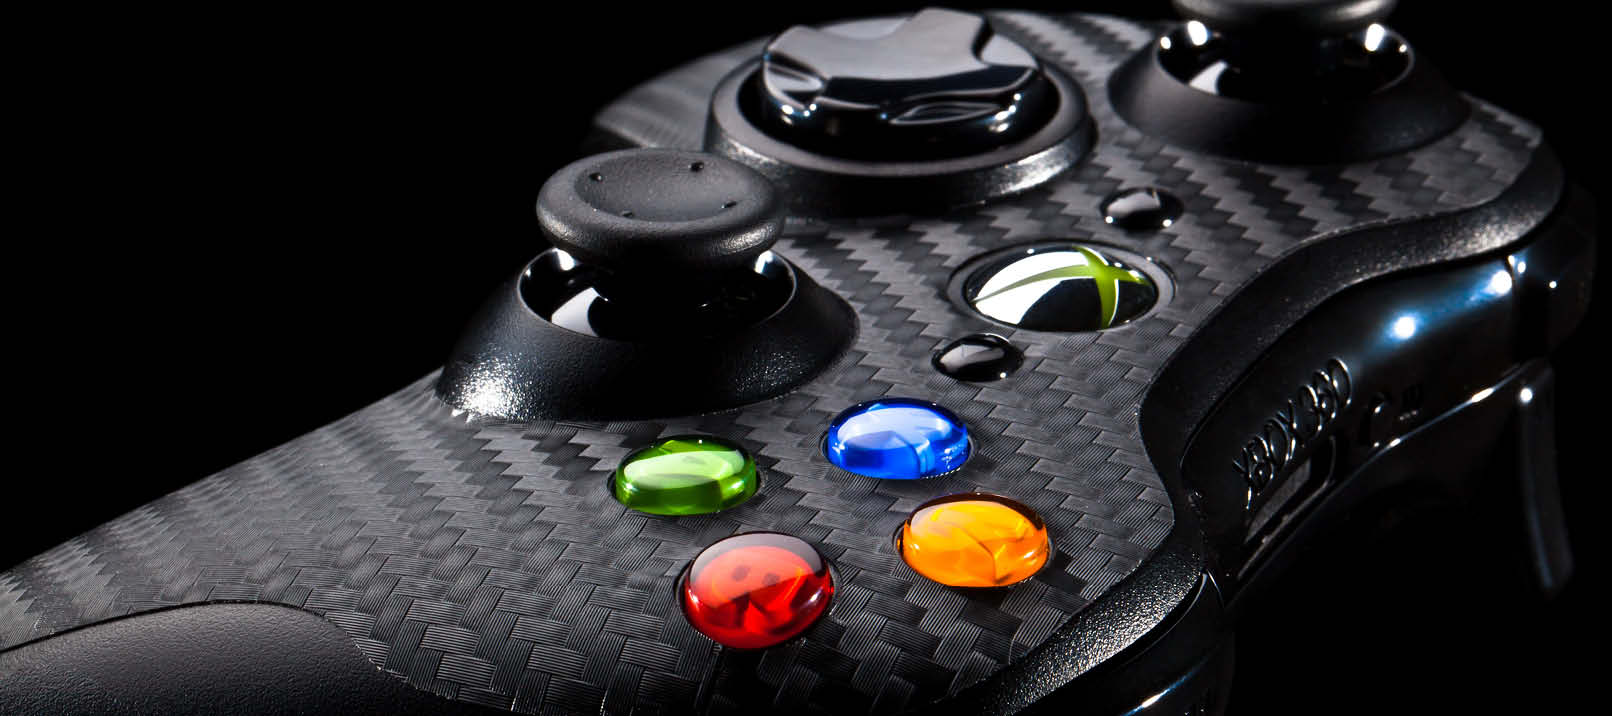 Xbox 360 Nearly Had Different Name To Catch Up With PlayStation xbox360 controller side carbon black